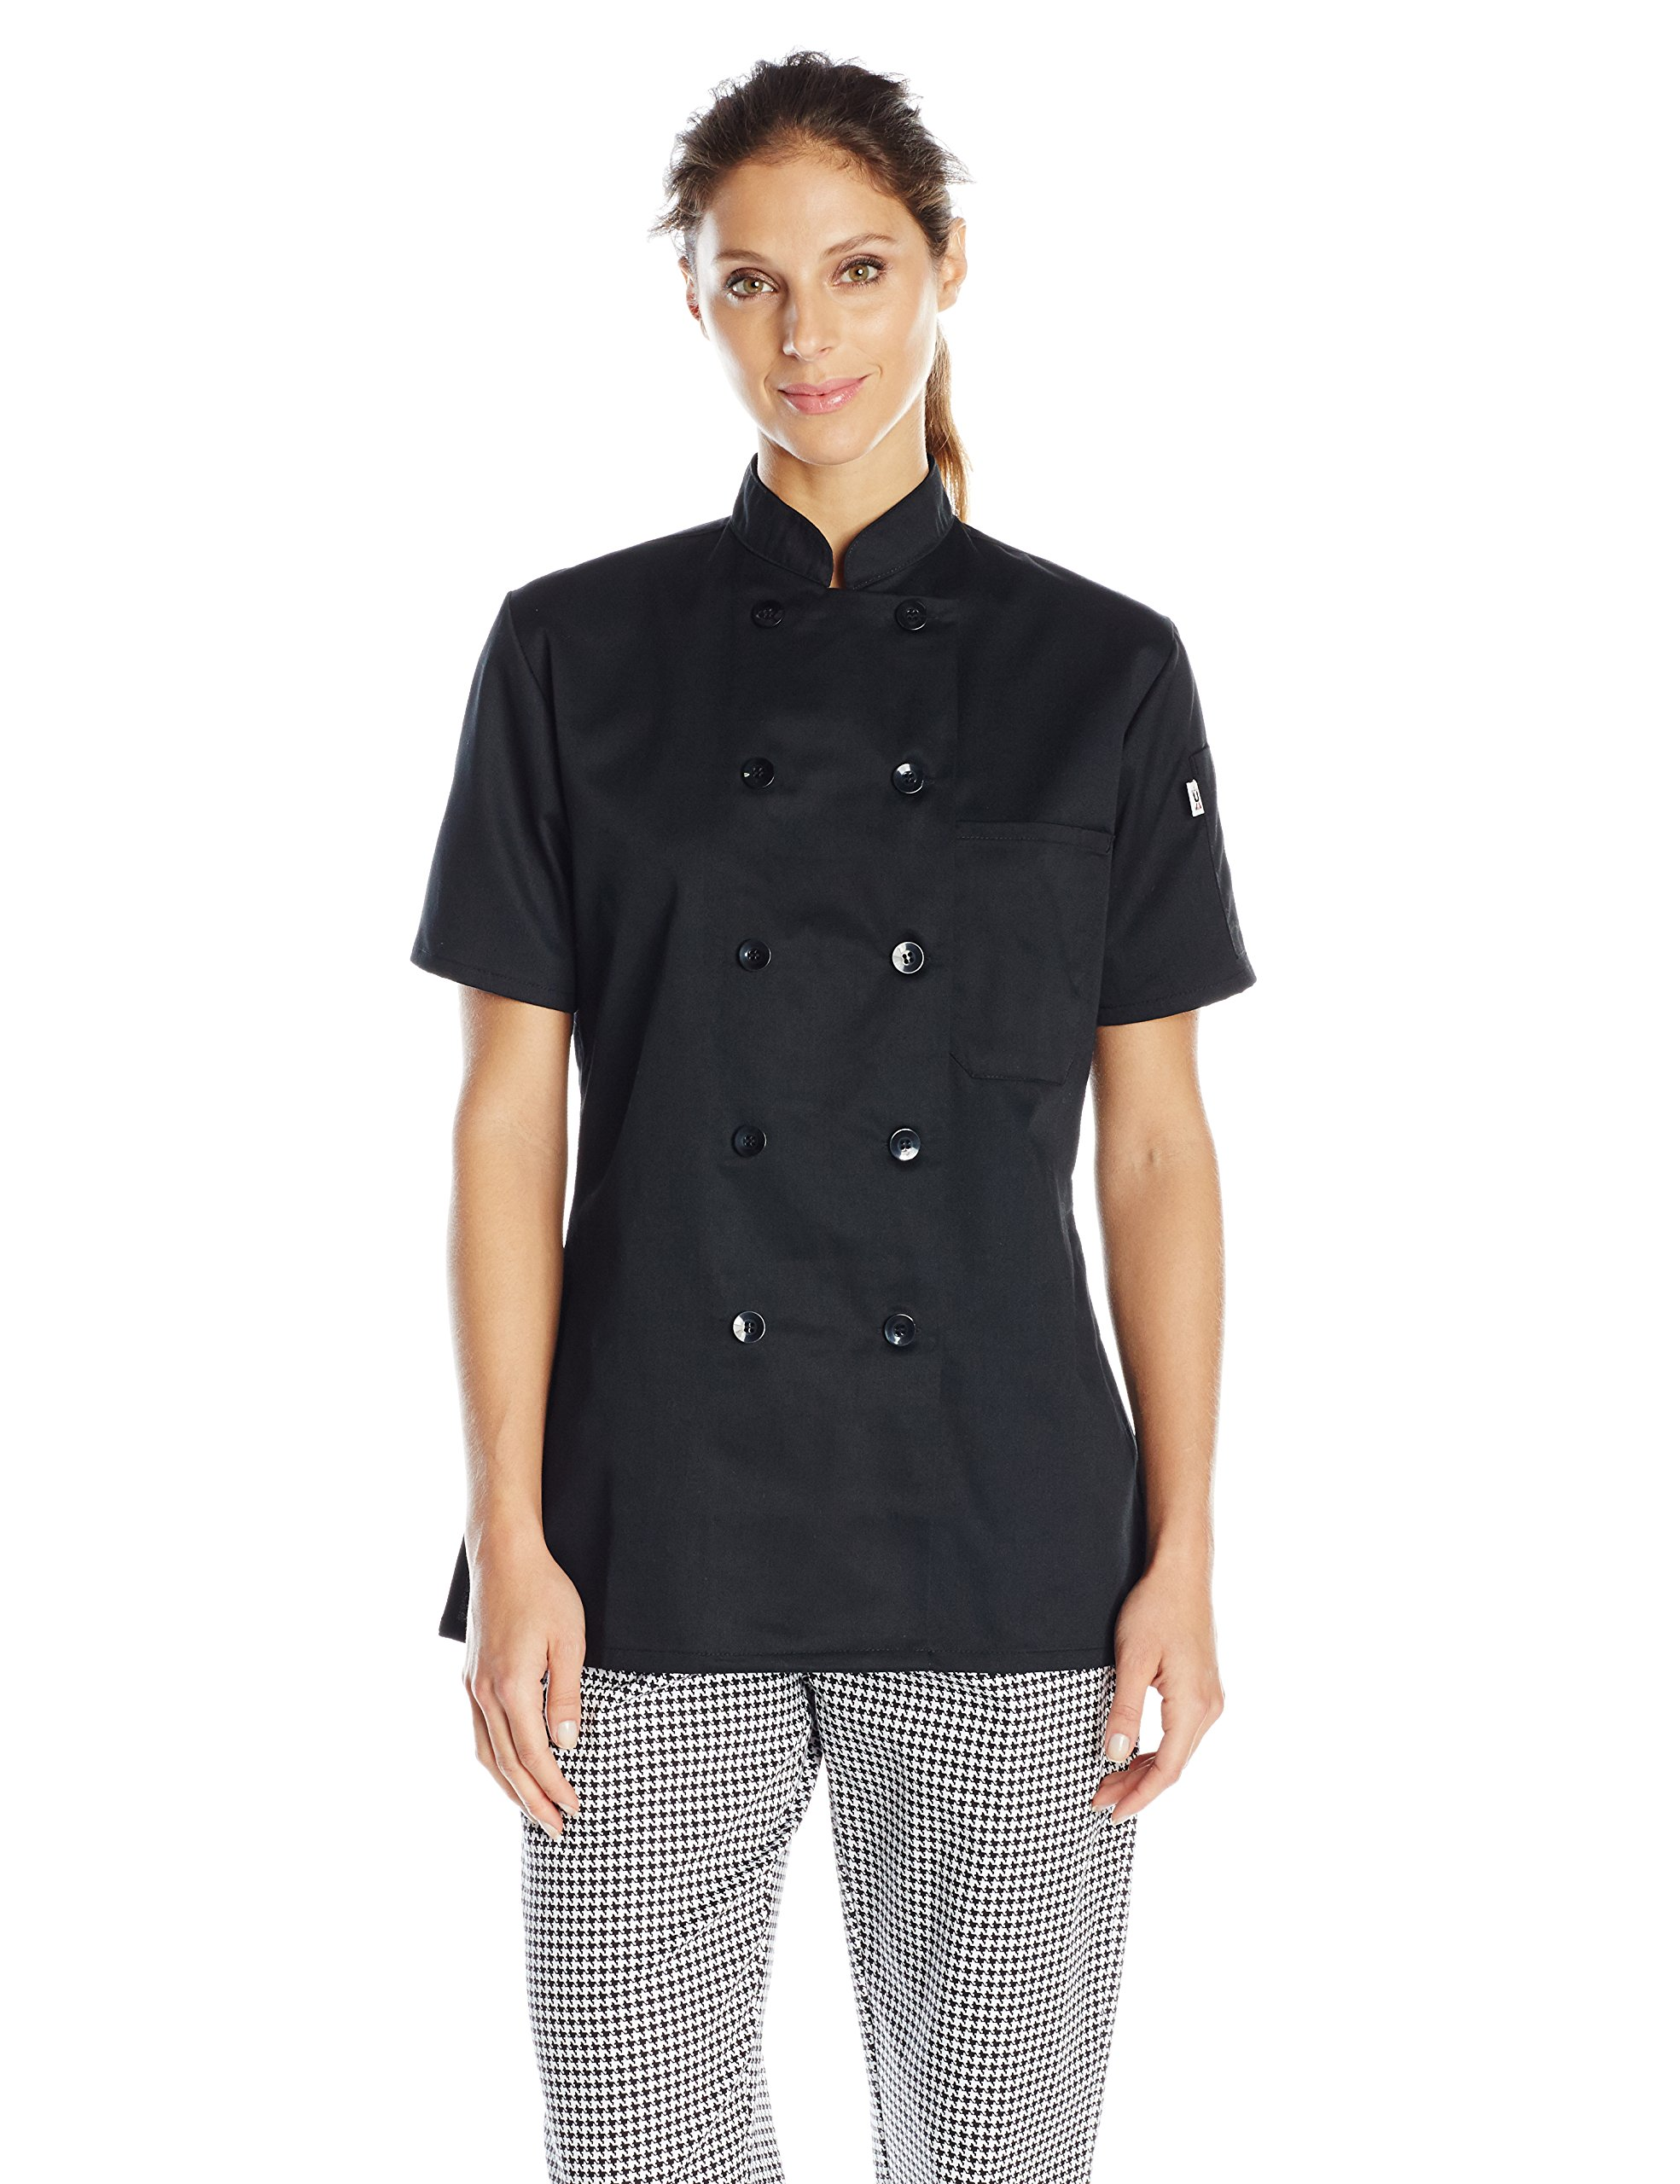 Uncommon Threads Women's Tahoe Fit Chef Coat, Black, Large by Uncommon Threads